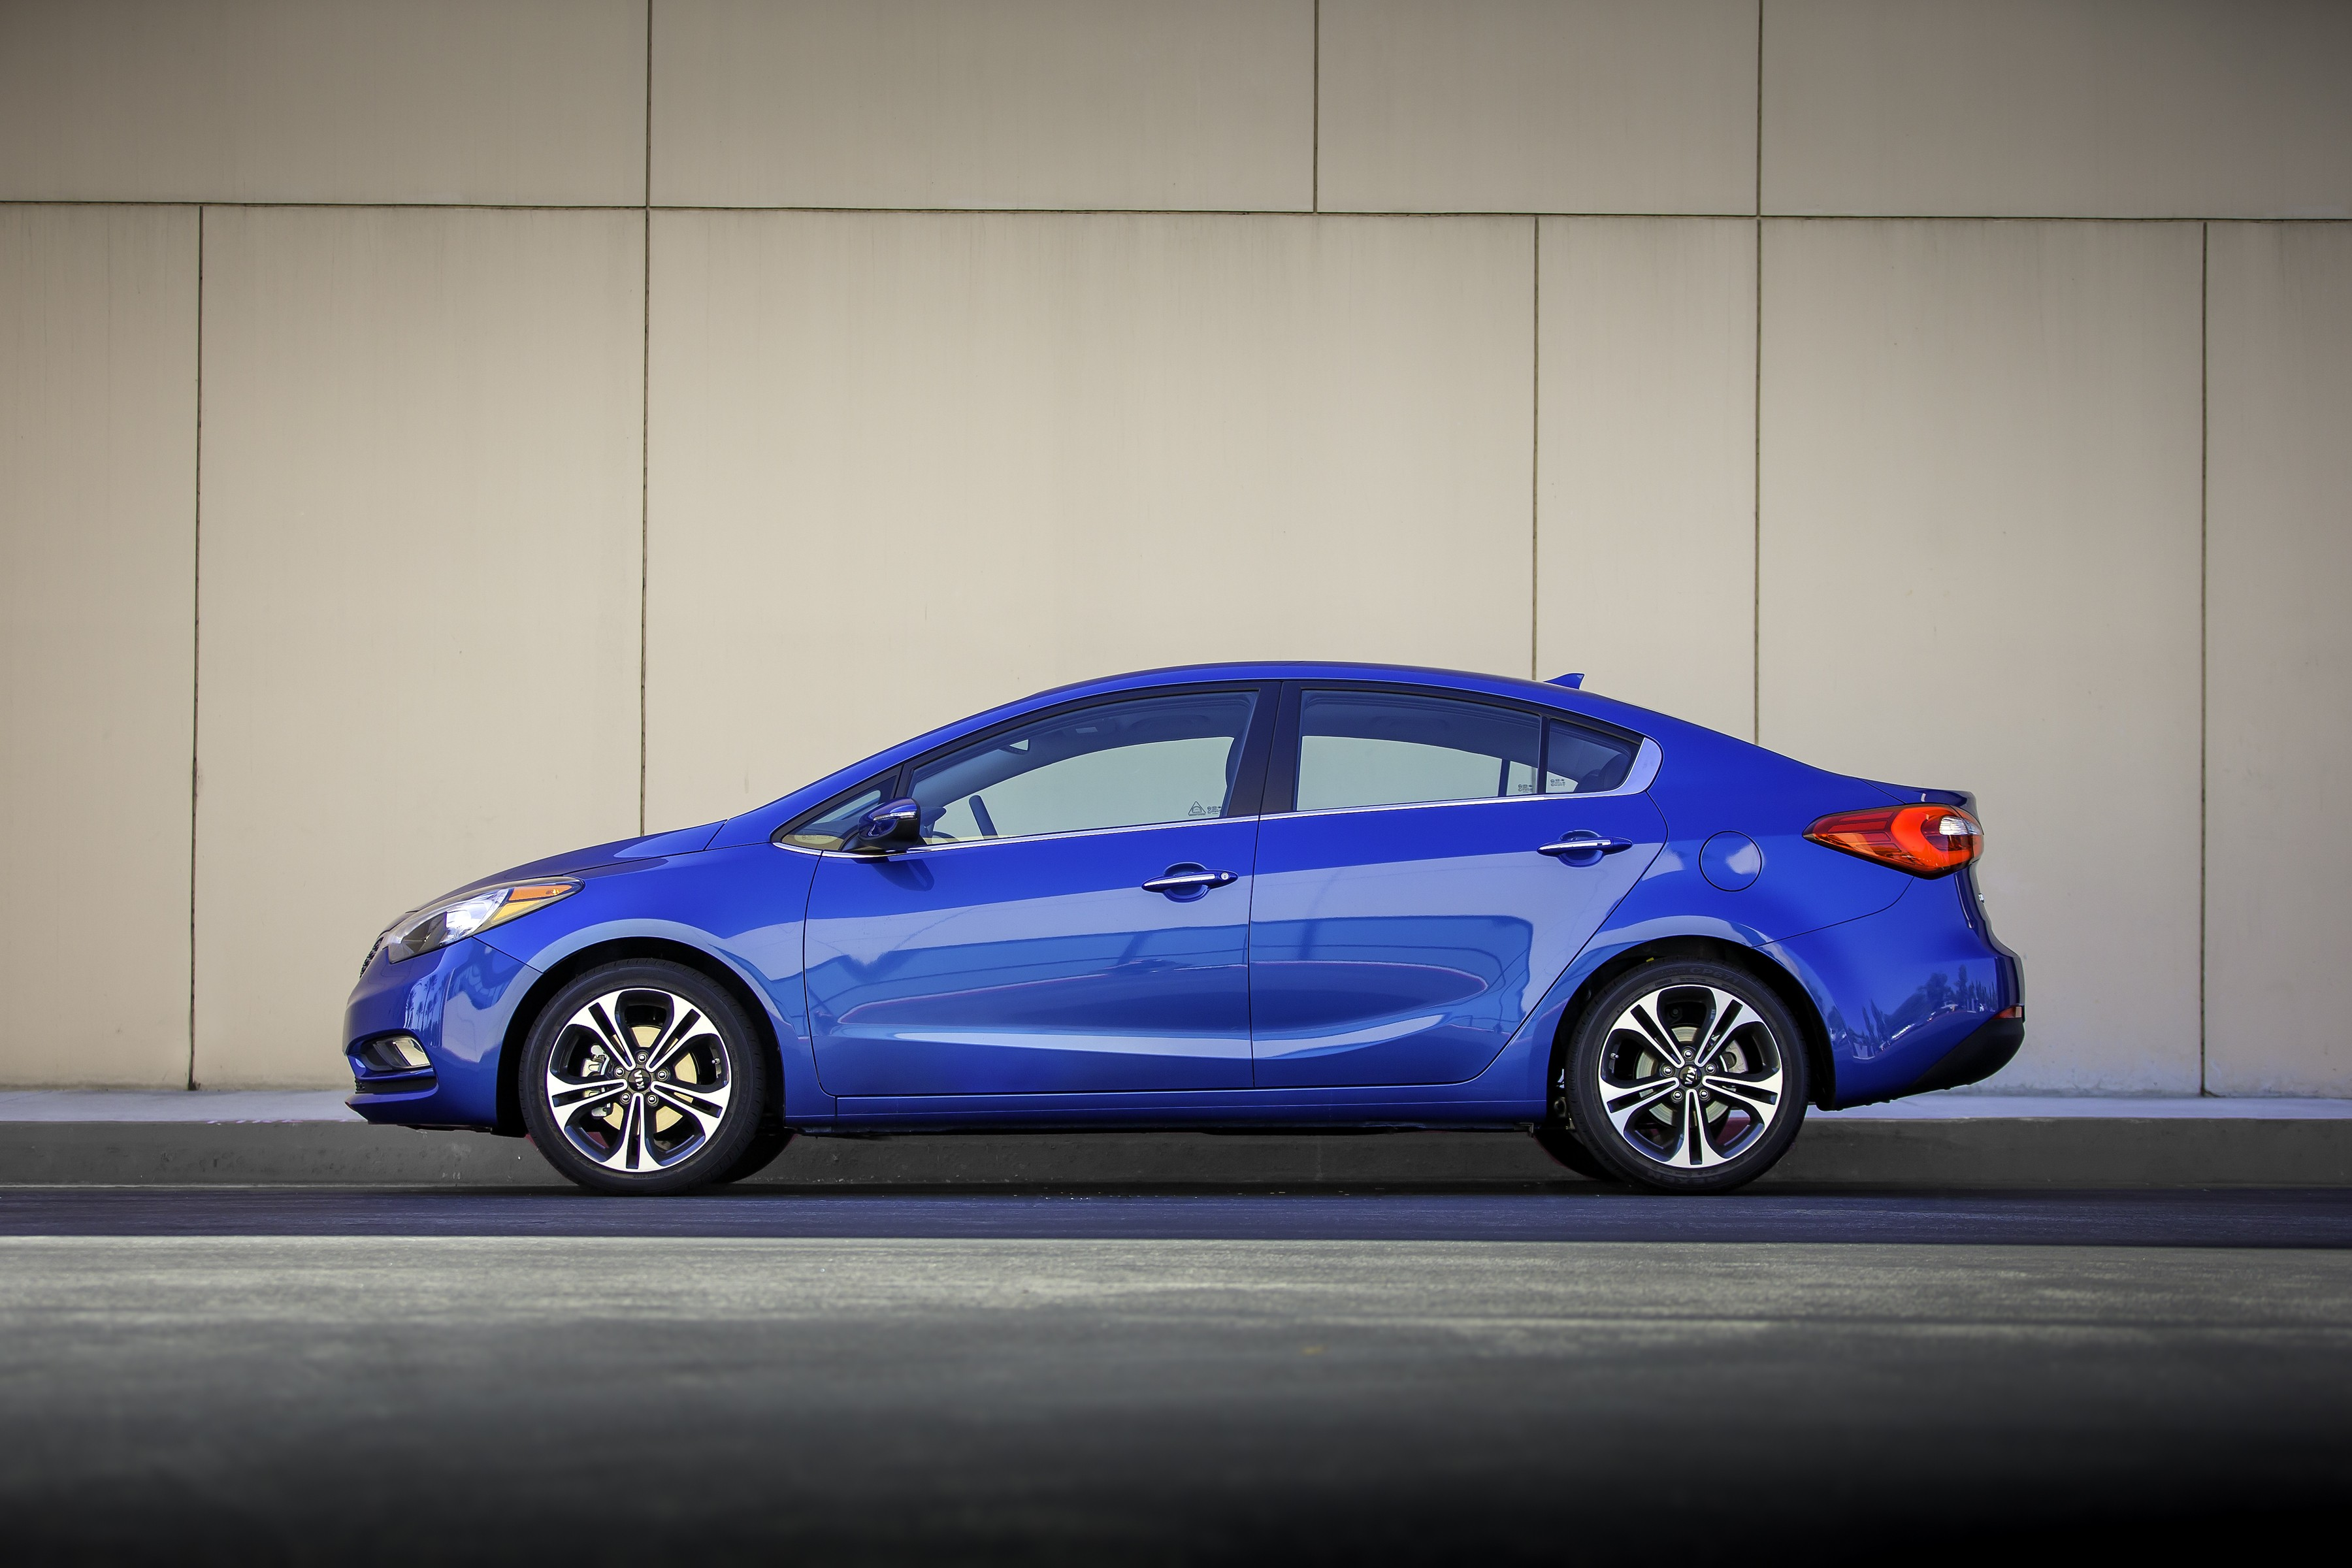 2014 Kia Forte | Top Speed. »